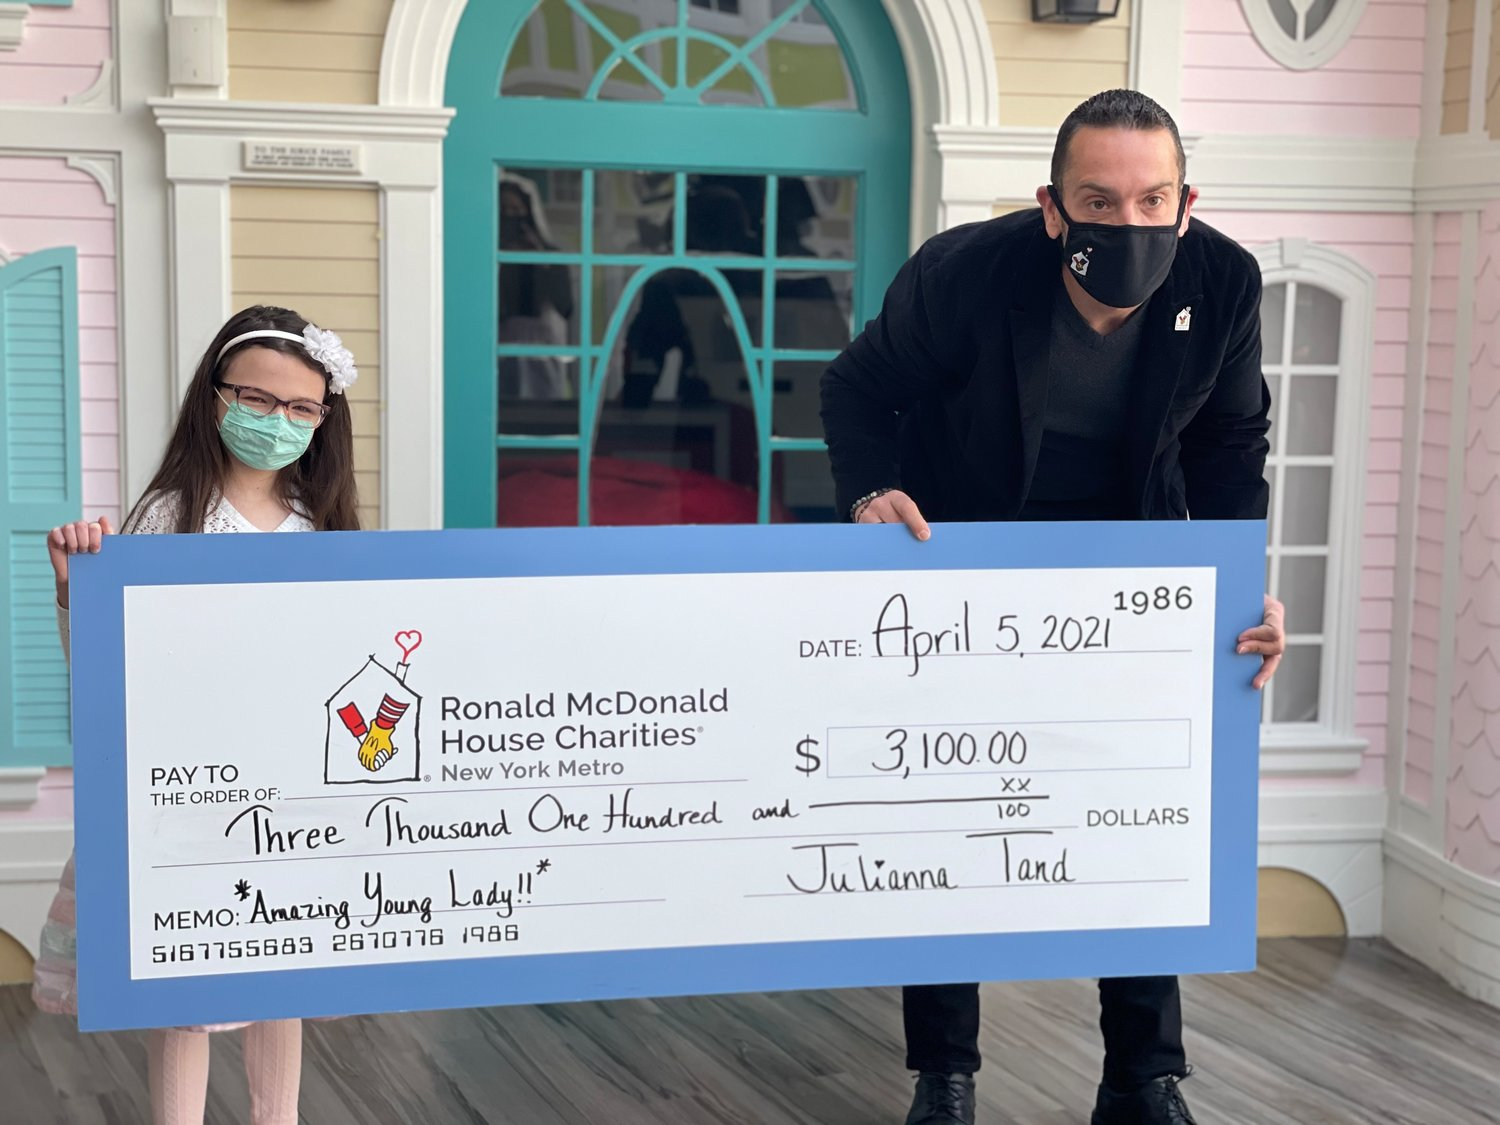 Julianna presented the donation to Ronald McDonald House Charities New York Metro CEO Matthew Campo.